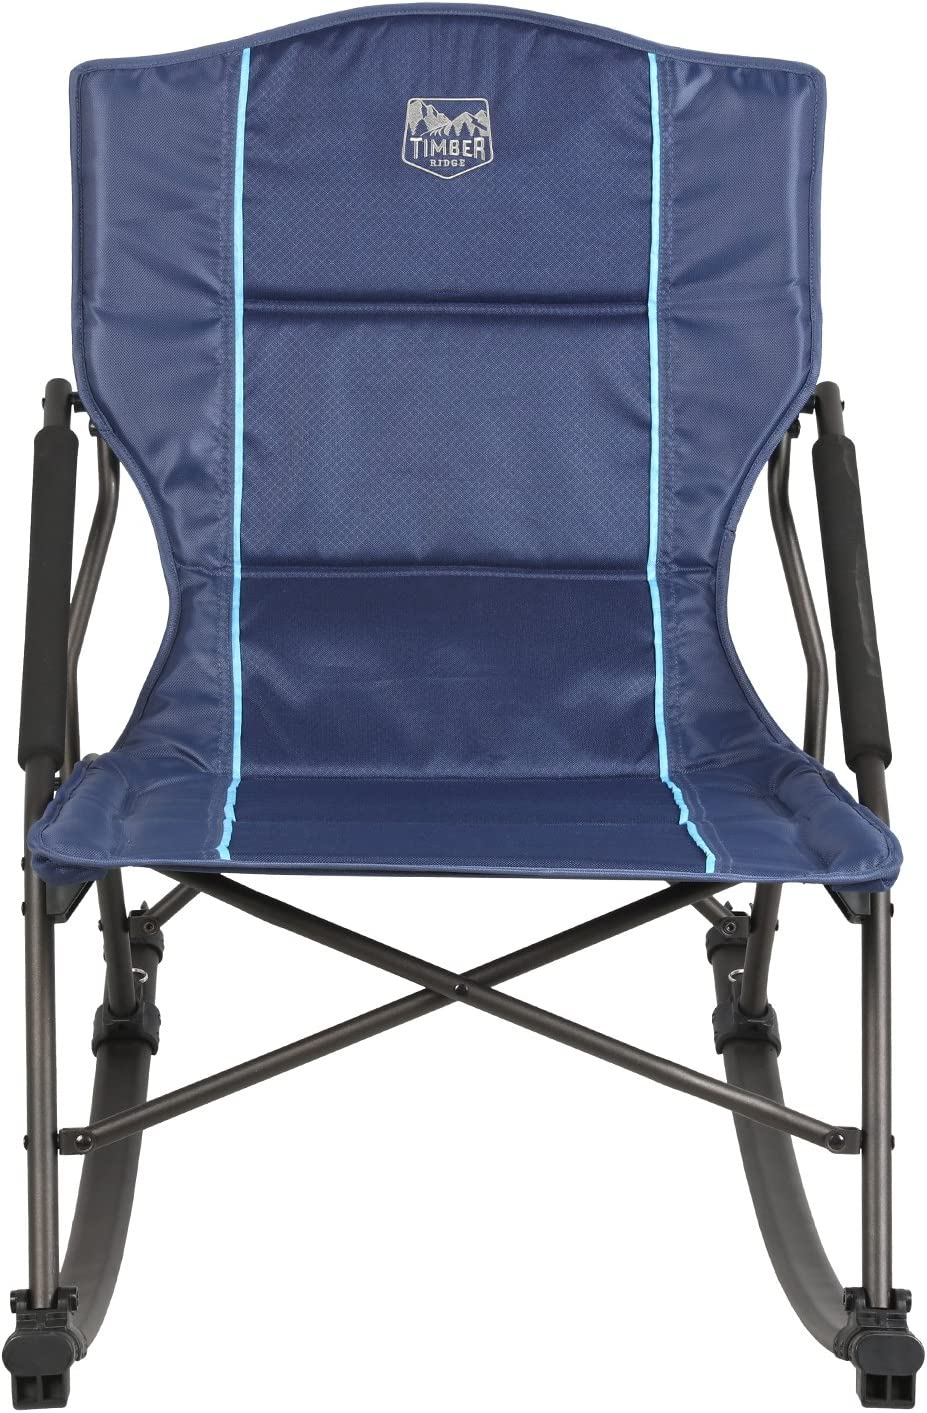 Timber ridge catalpa relax and rock chair